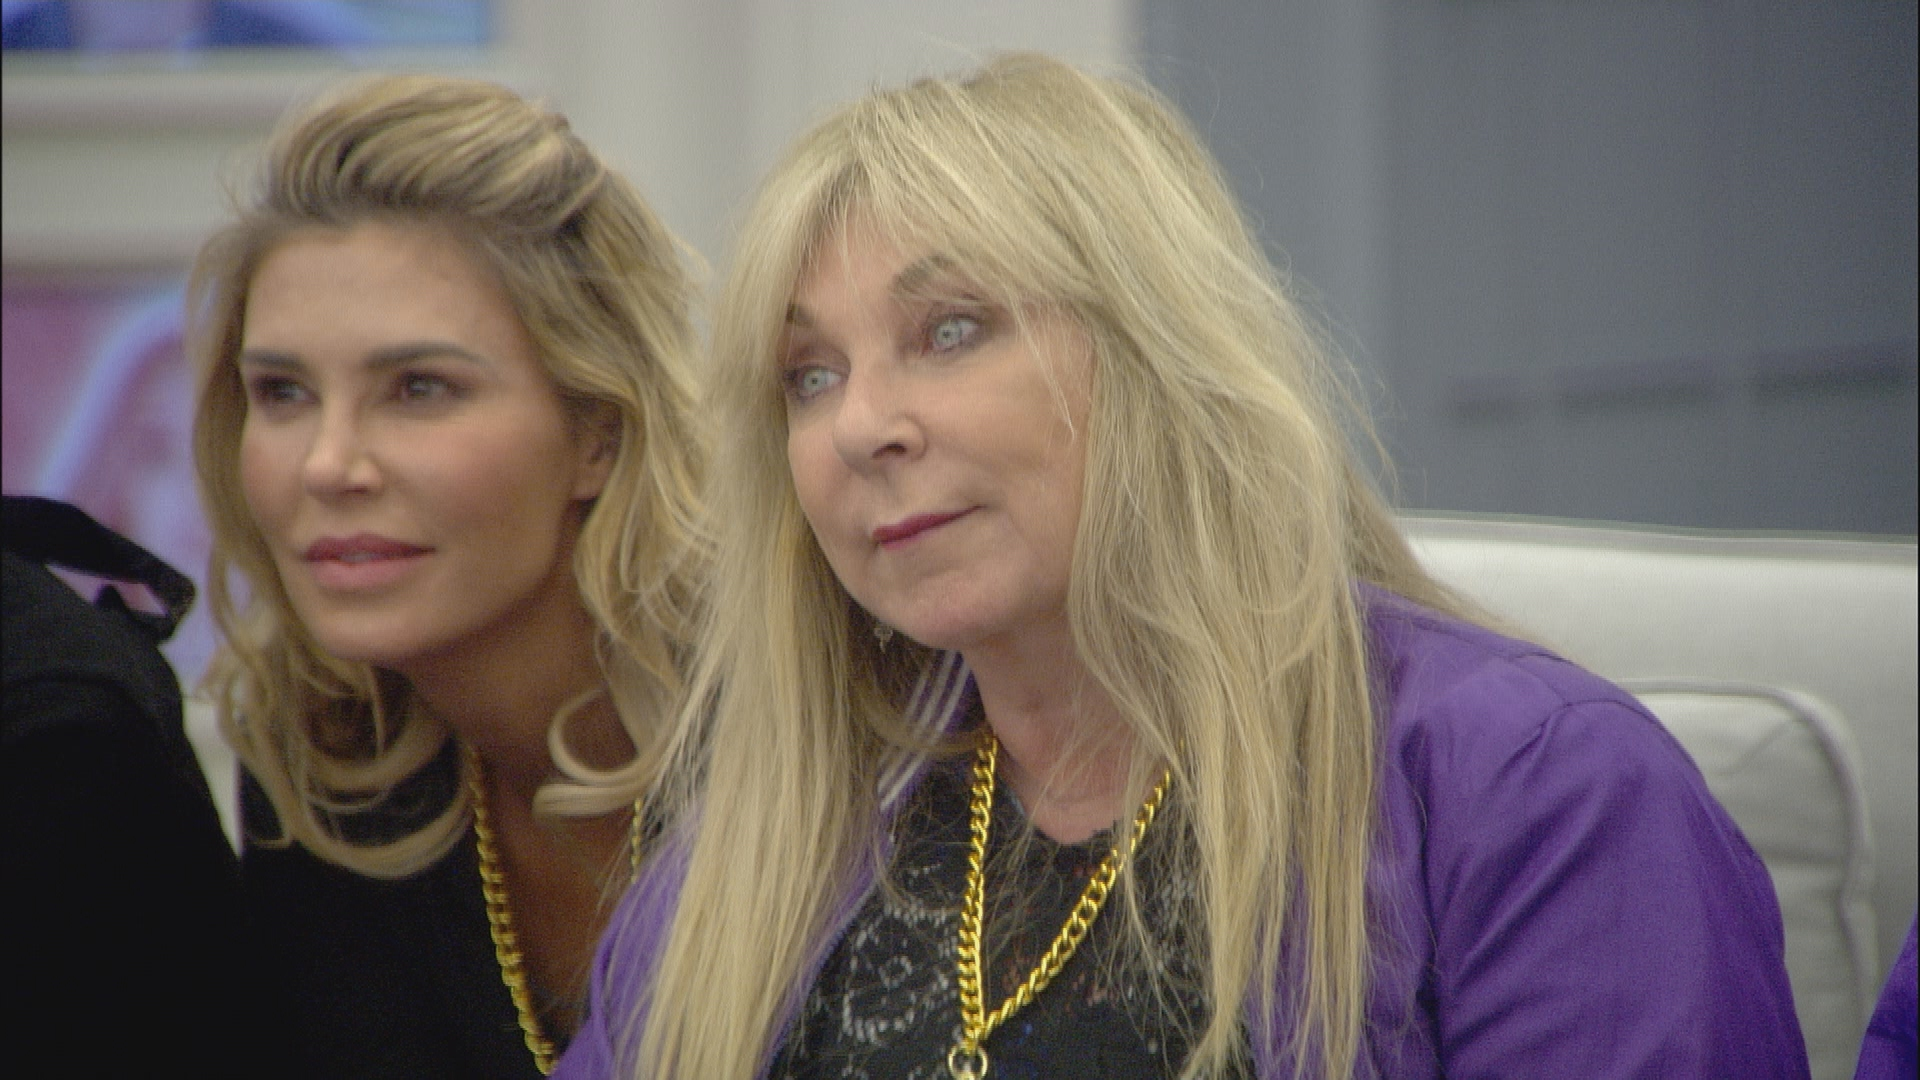 Celebrity Big Brother: Brandi thinks Derek has the largest penis because 'you can see the weight in his pants'